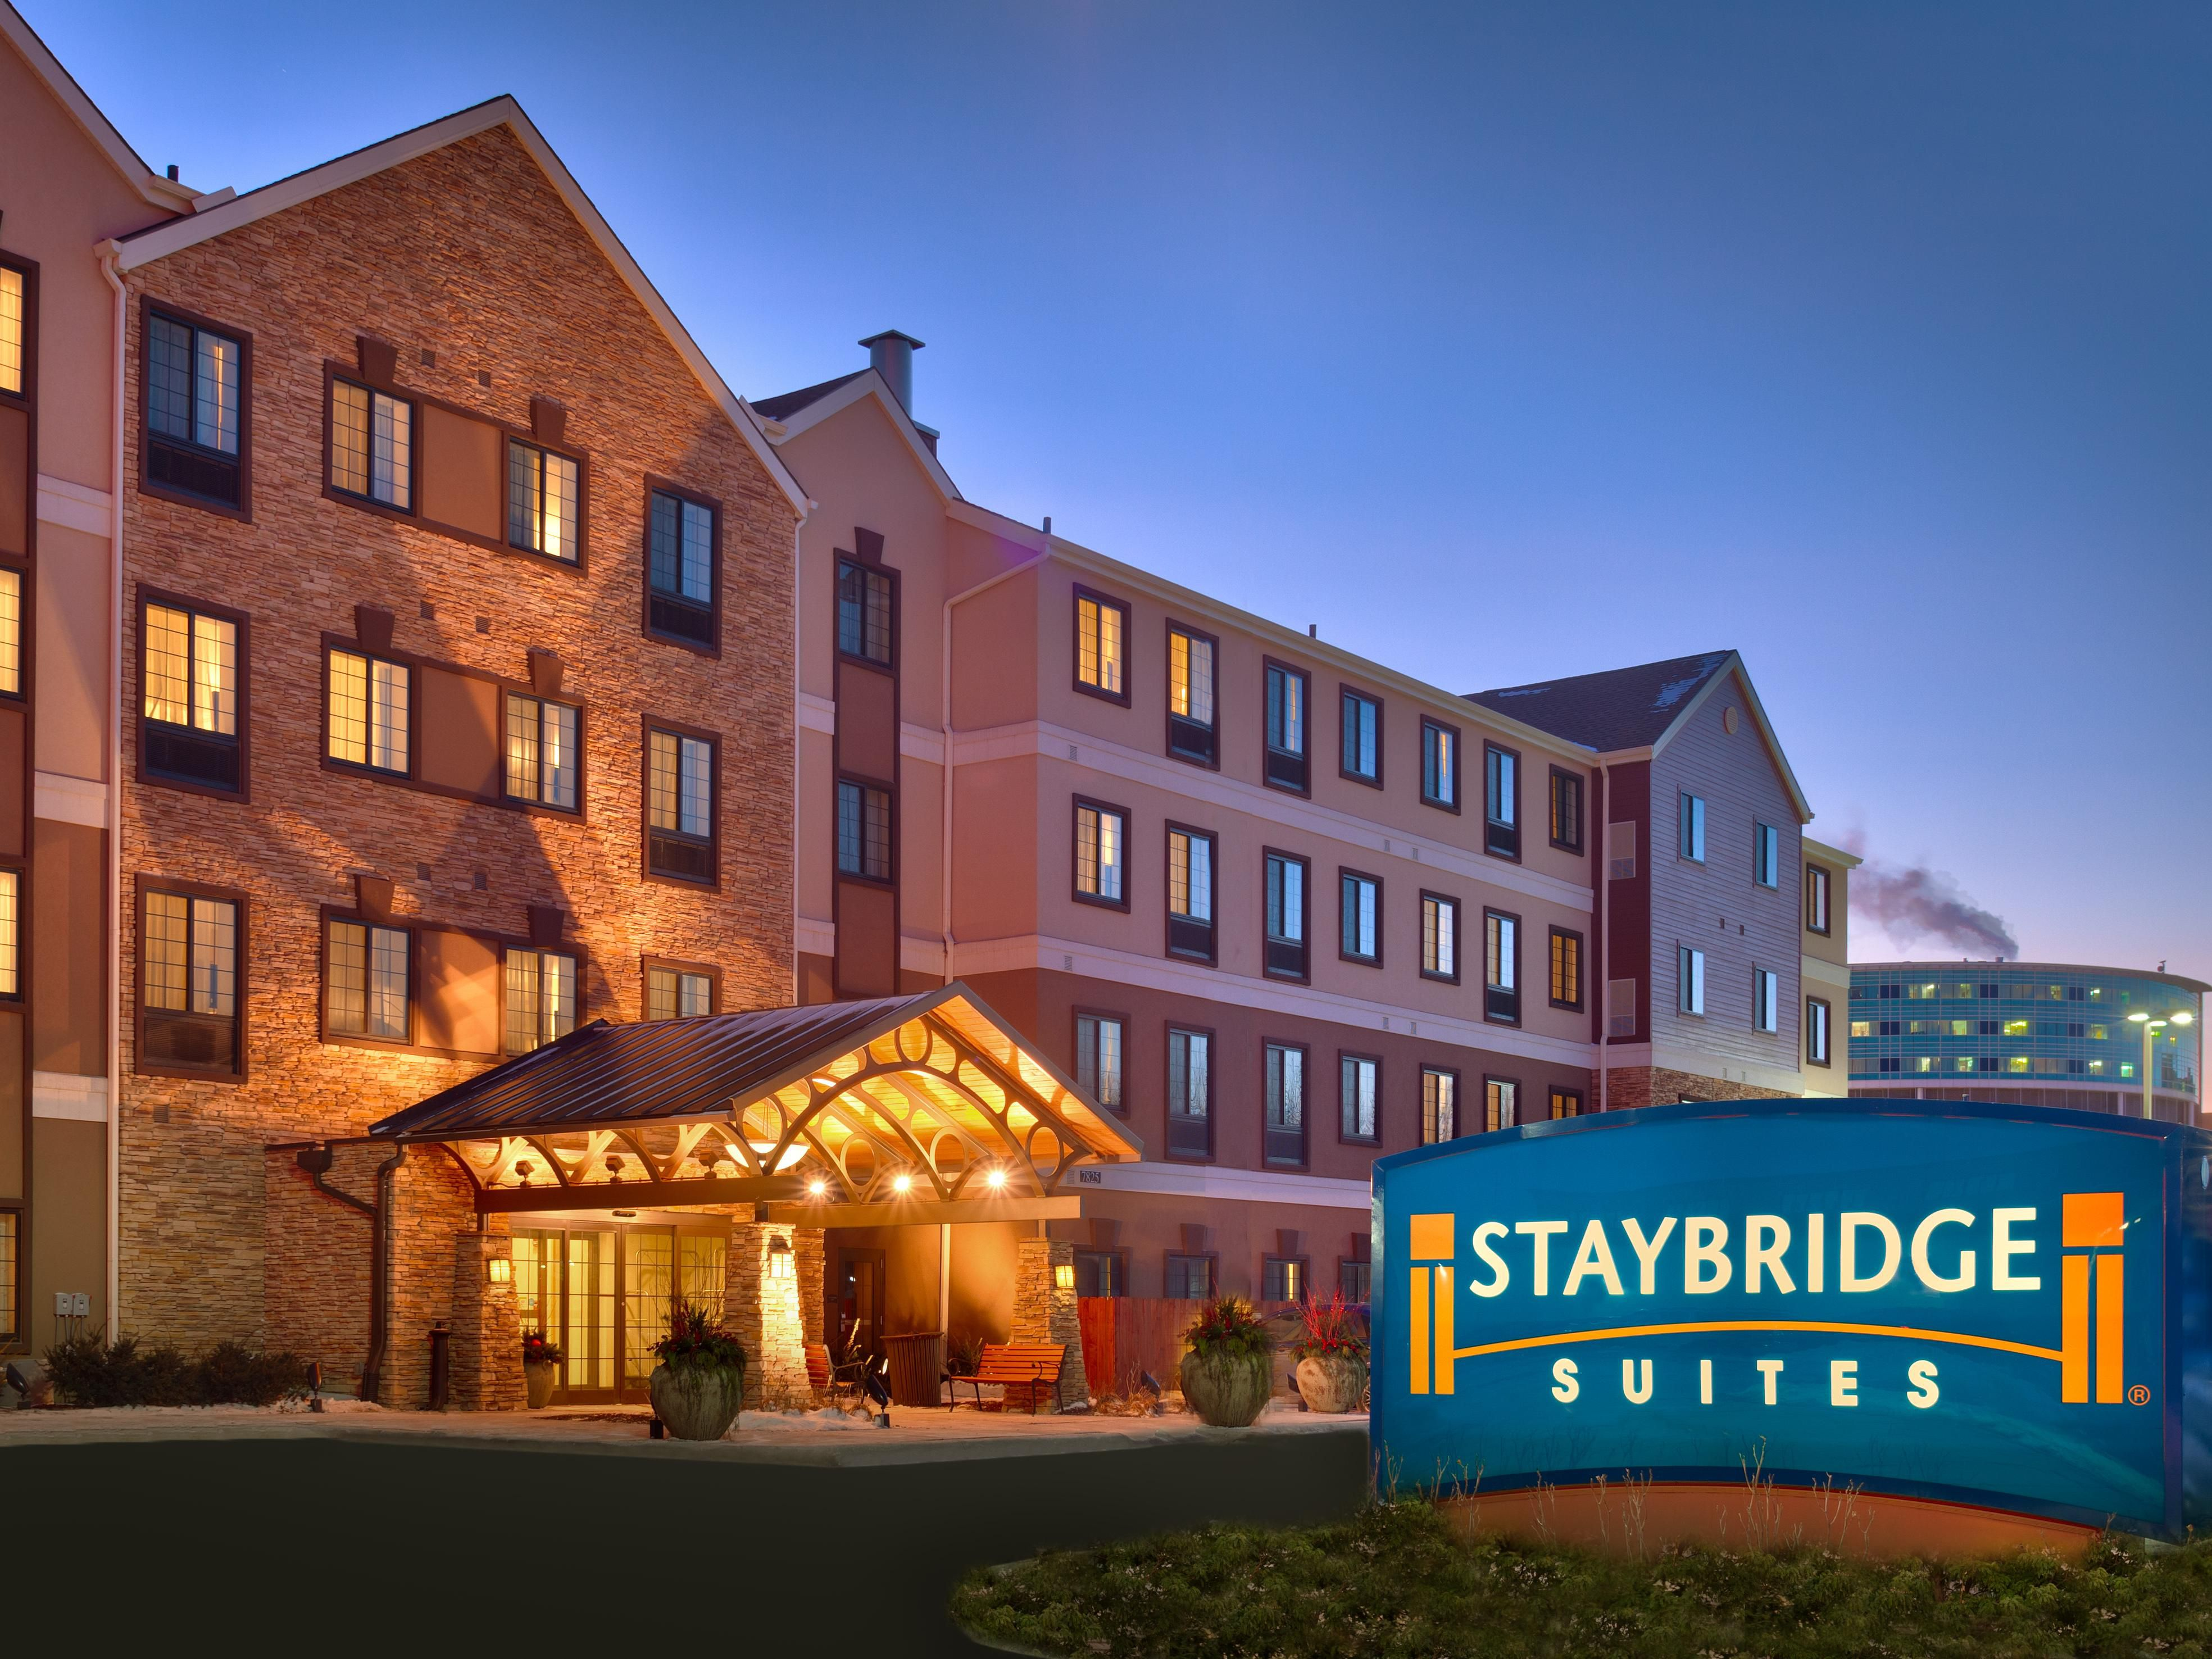 Omaha Hotels Staybridge Suites 80th And Dodge Extended Stay Hotel In Nebraska